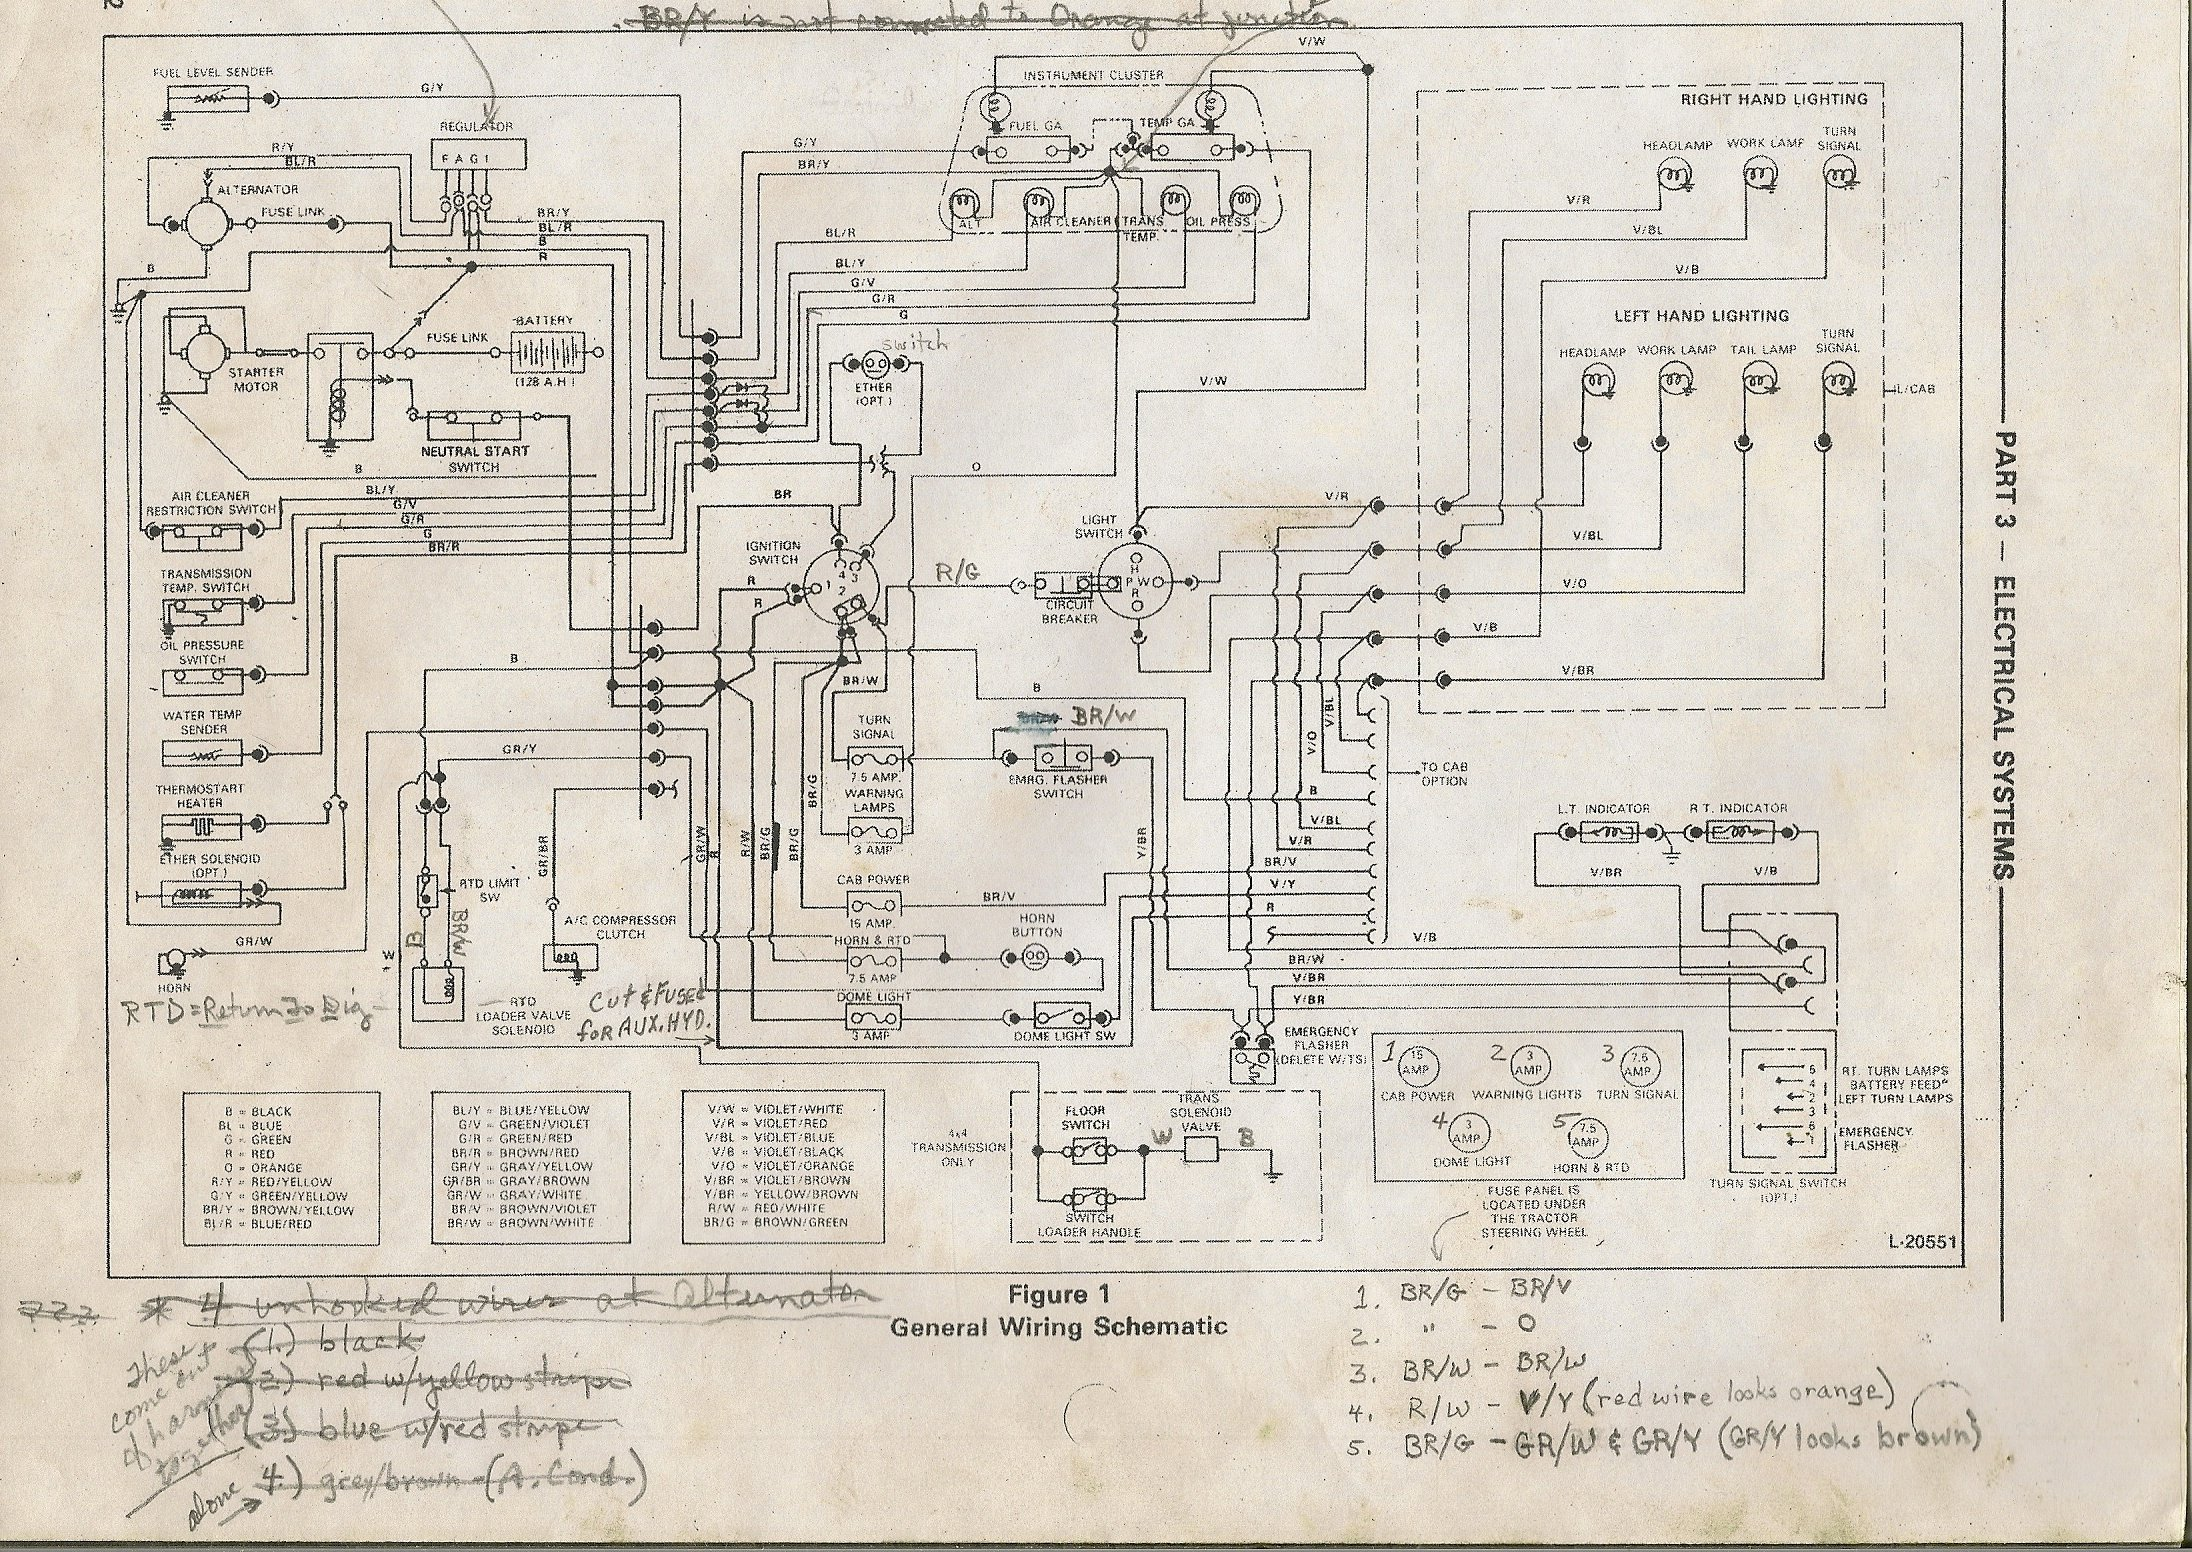 Fiat Tractor Wiring Diagram Libraries Alternator Libraryi Have 1987 Ford Model 655a Backhoe That I Can Get